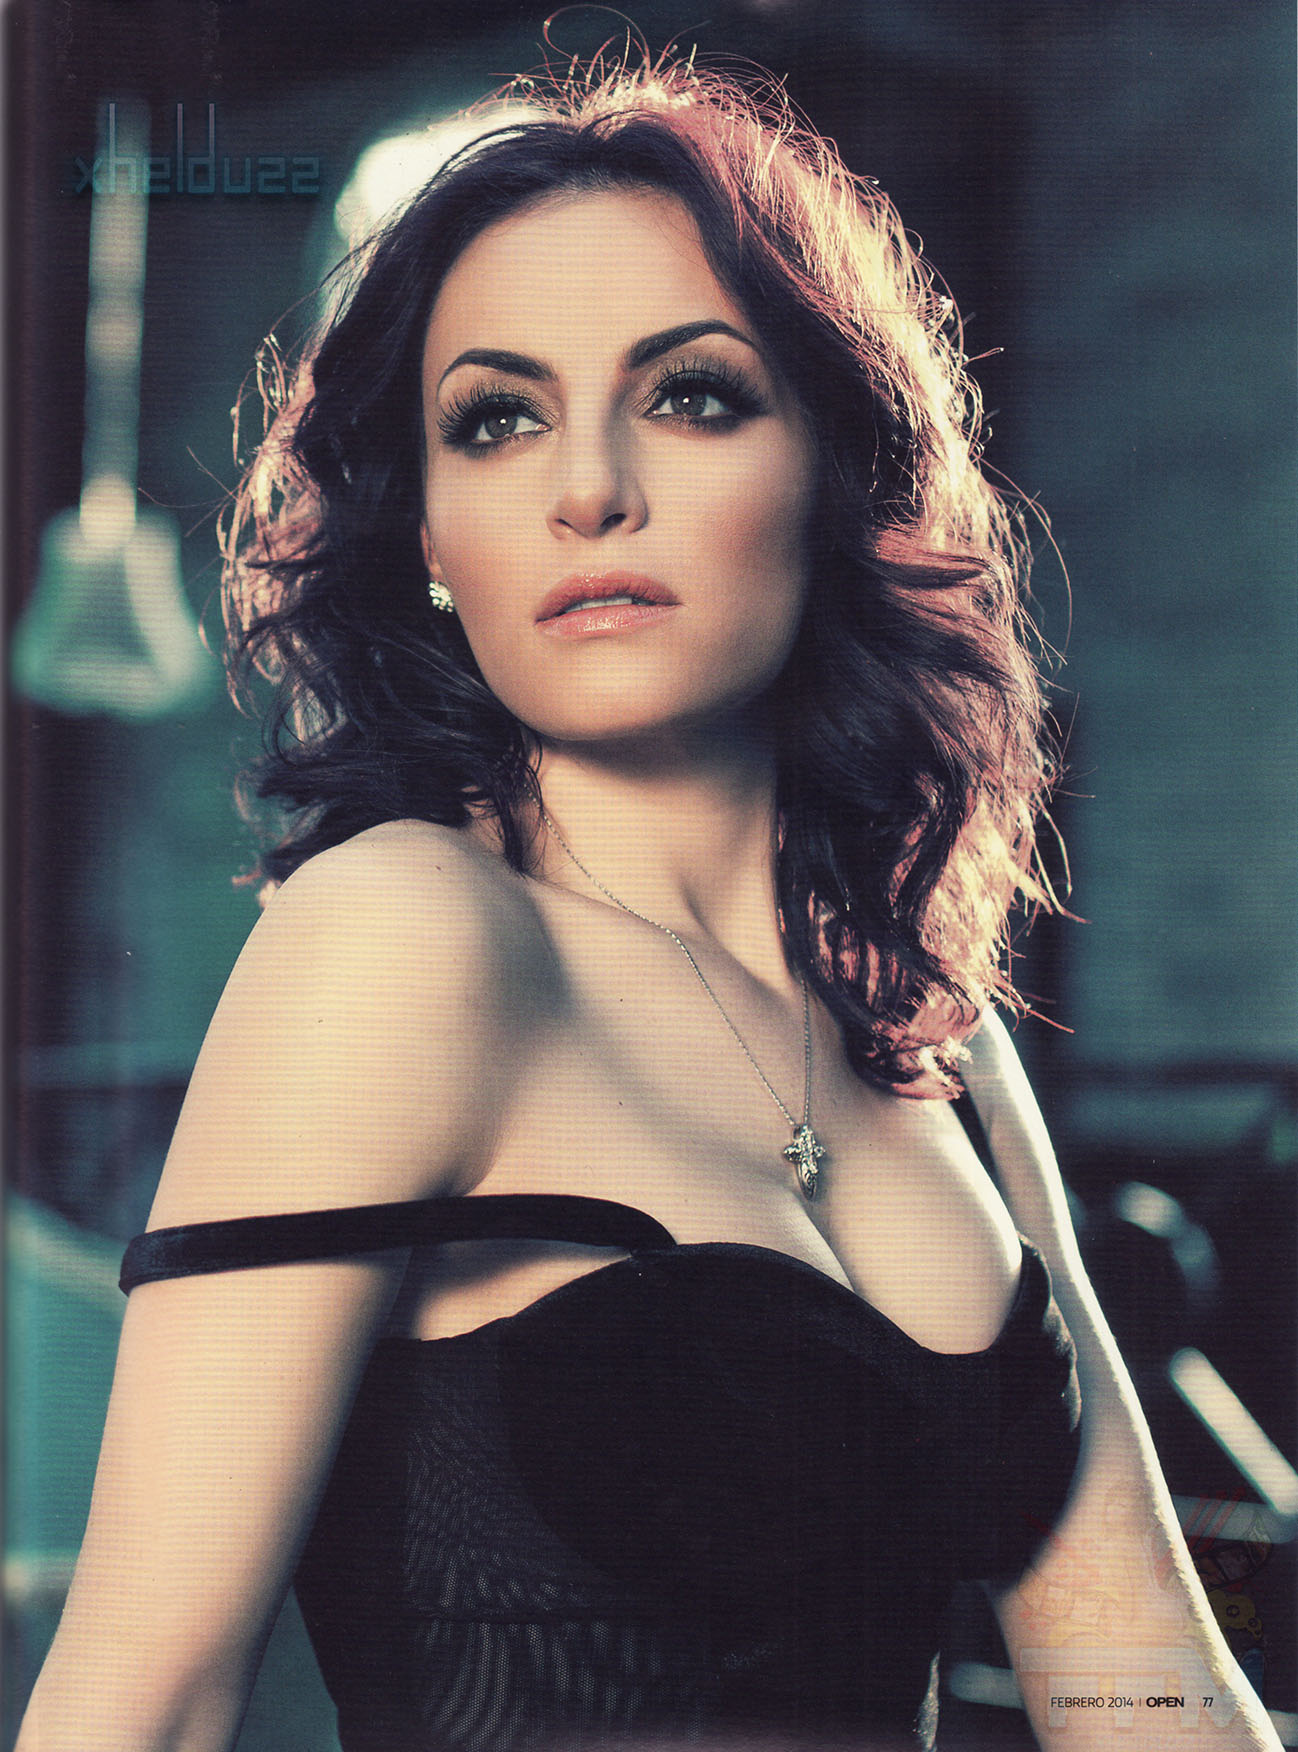 Celebrity Marimar Vega nude (89 photo), Tits, Cleavage, Selfie, bra 2006